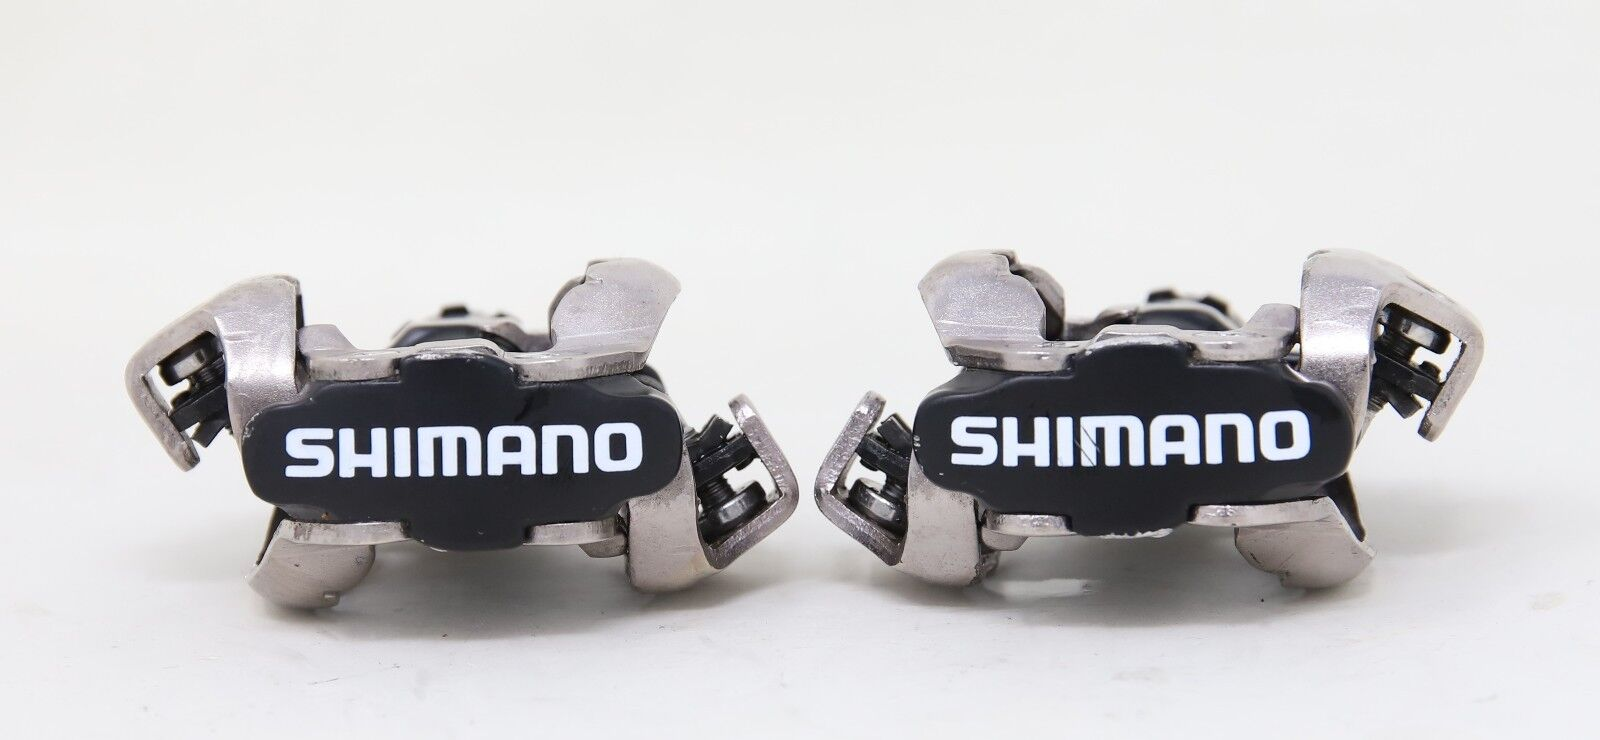 NOS SHIMANO PEDALS PDM520 MTB CLIPLESS SPD 916x20TPI MOUNTAIN BIKE BICYCLE